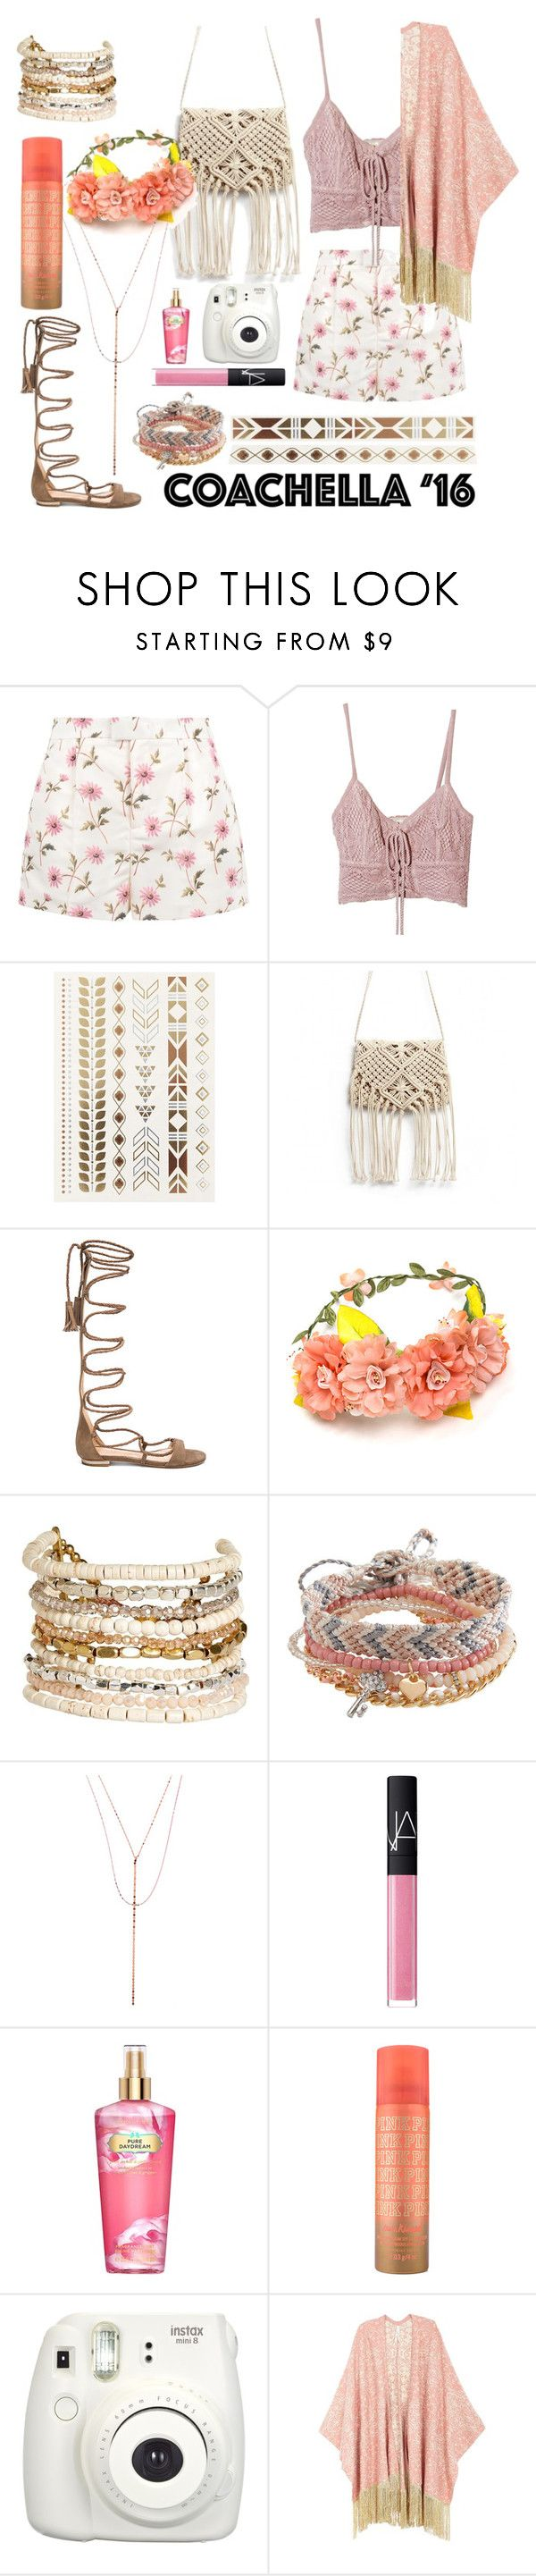 """Untitled #78"" by xenalevina ❤ liked on Polyvore featuring RED Valentino, Jens Pirate Booty, Topshop, Schutz, Panacea, Aéropostale, Lana, NARS Cosmetics, Victoria's Secret and Melissa McCarthy Seven7"